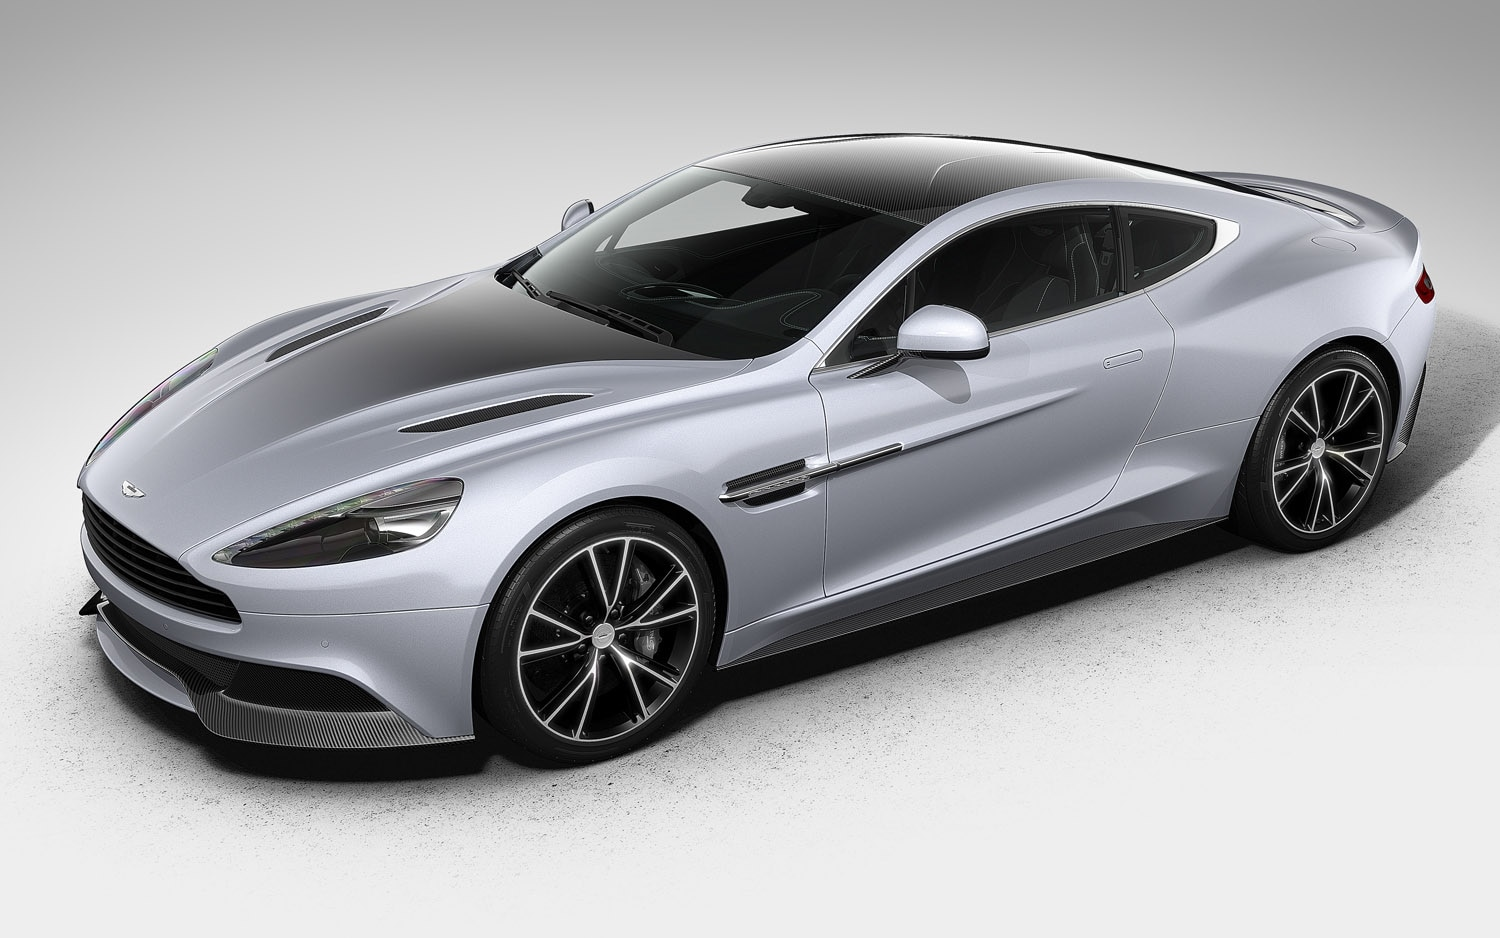 2013 Aston Martin Vanquish Centenary Edition Front Three Quarter1